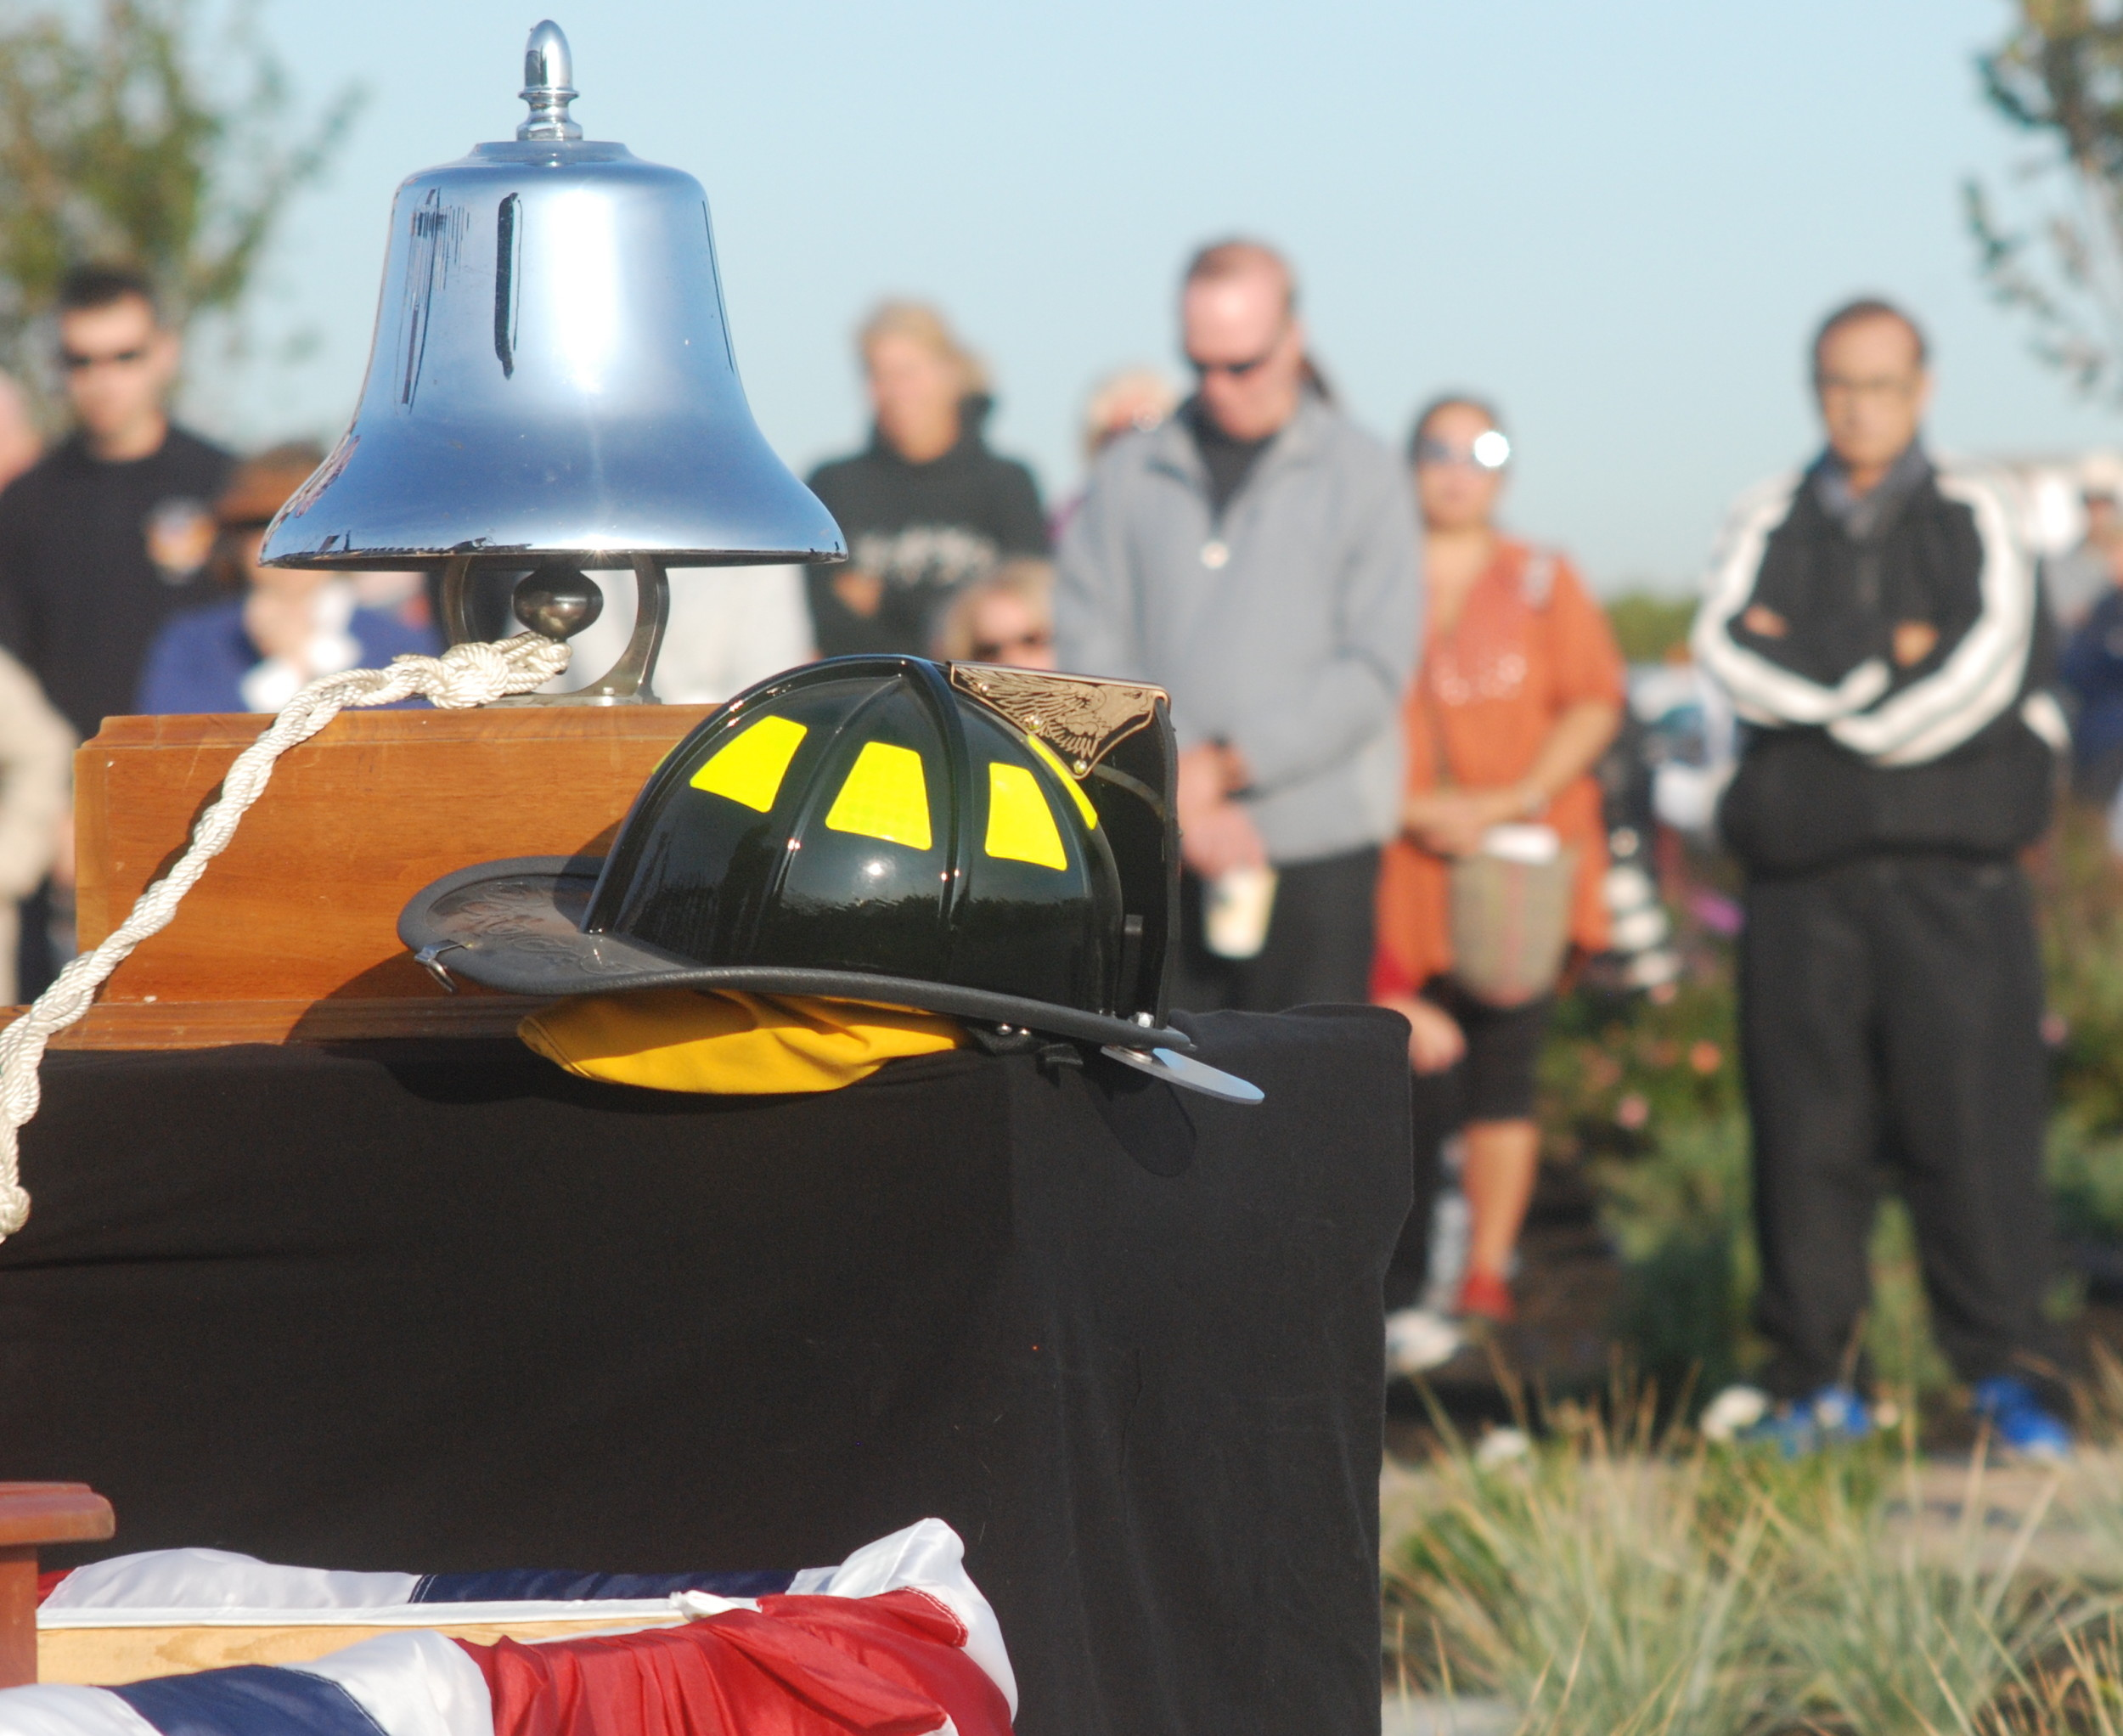 A firefighter's helmet found at ground zero sat in front of the lectern during the dedication ceremony.